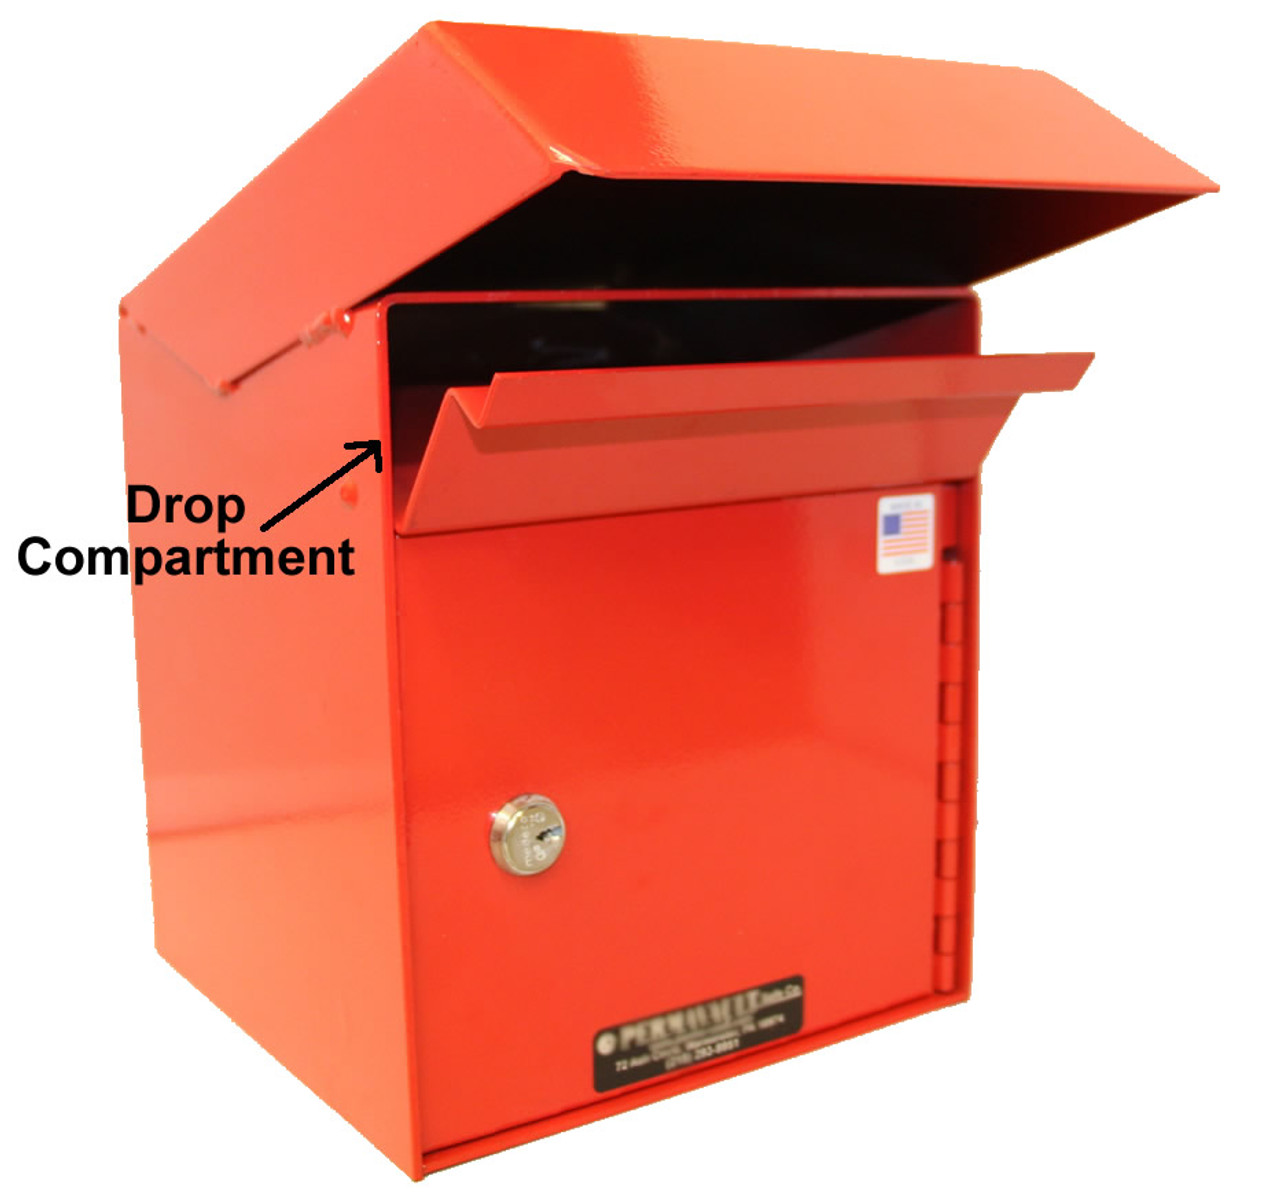 Outdoor Secure Payment Locking Drop Box shown with drop door open